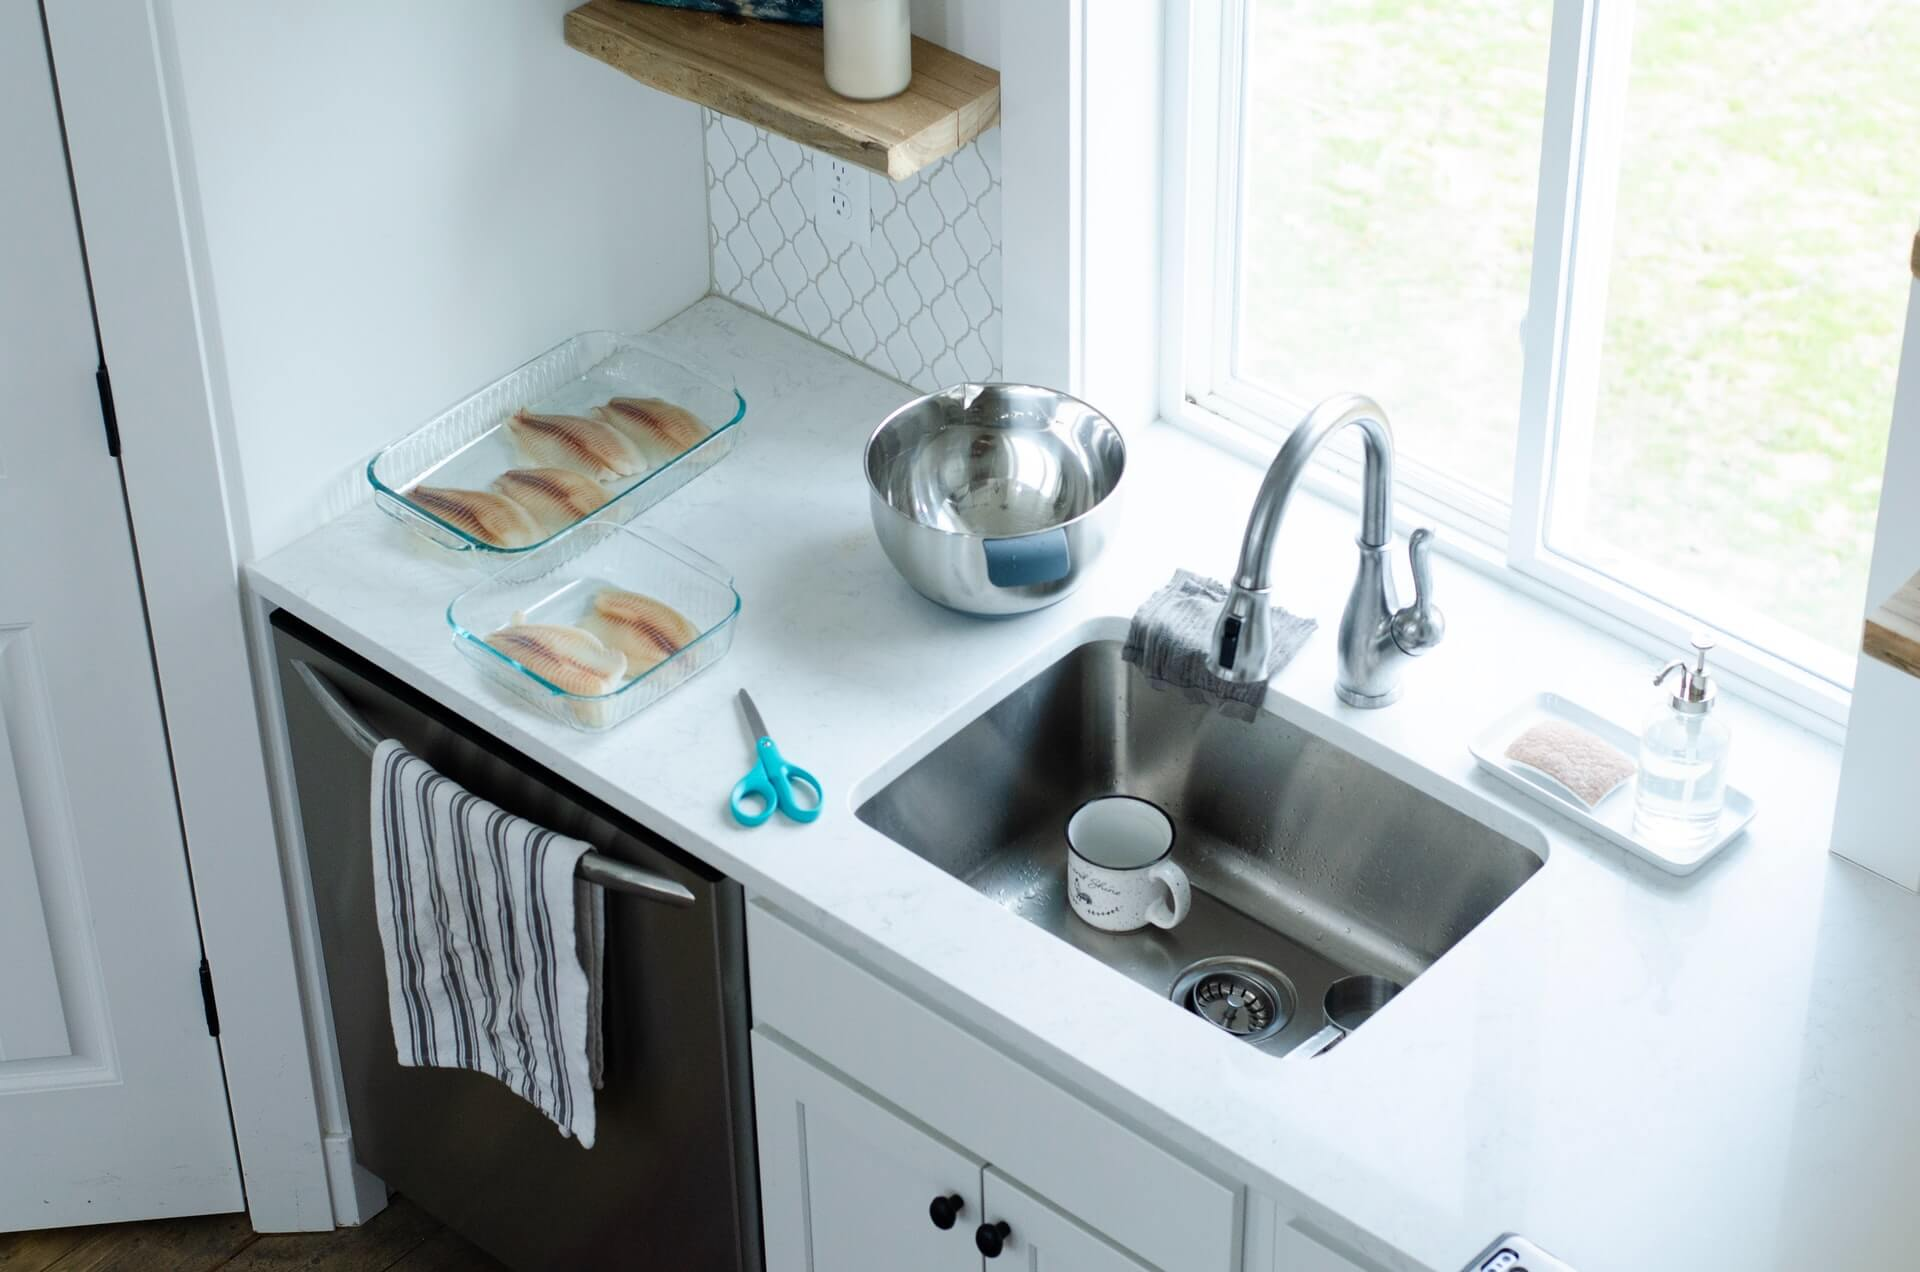 How to avoid a stinky kitchen sink drain.